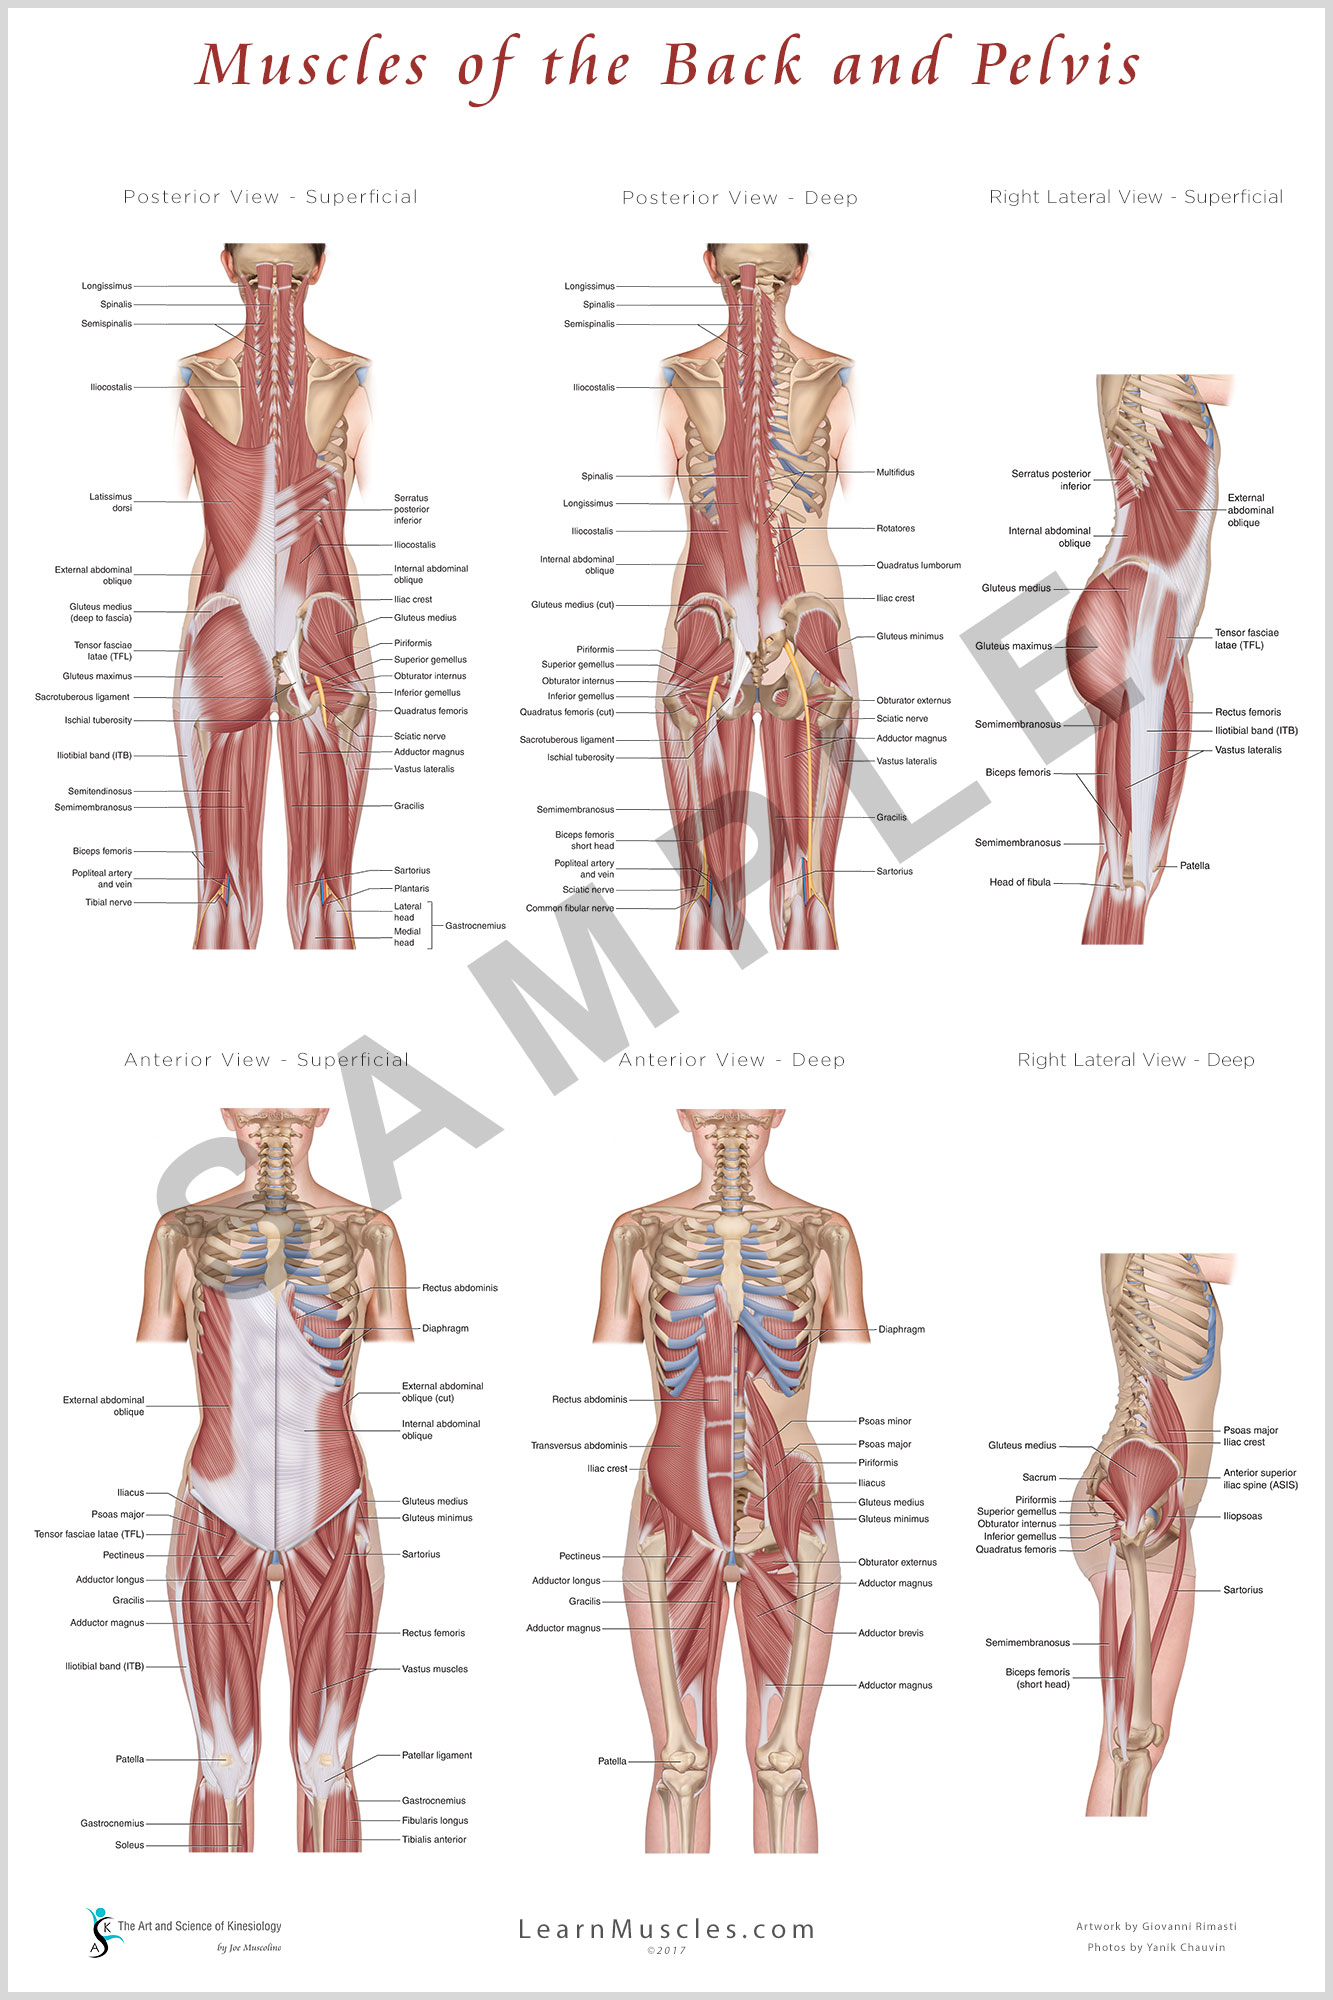 Muscles Of The Back And Pelvis 24 X 36 Premium Poster